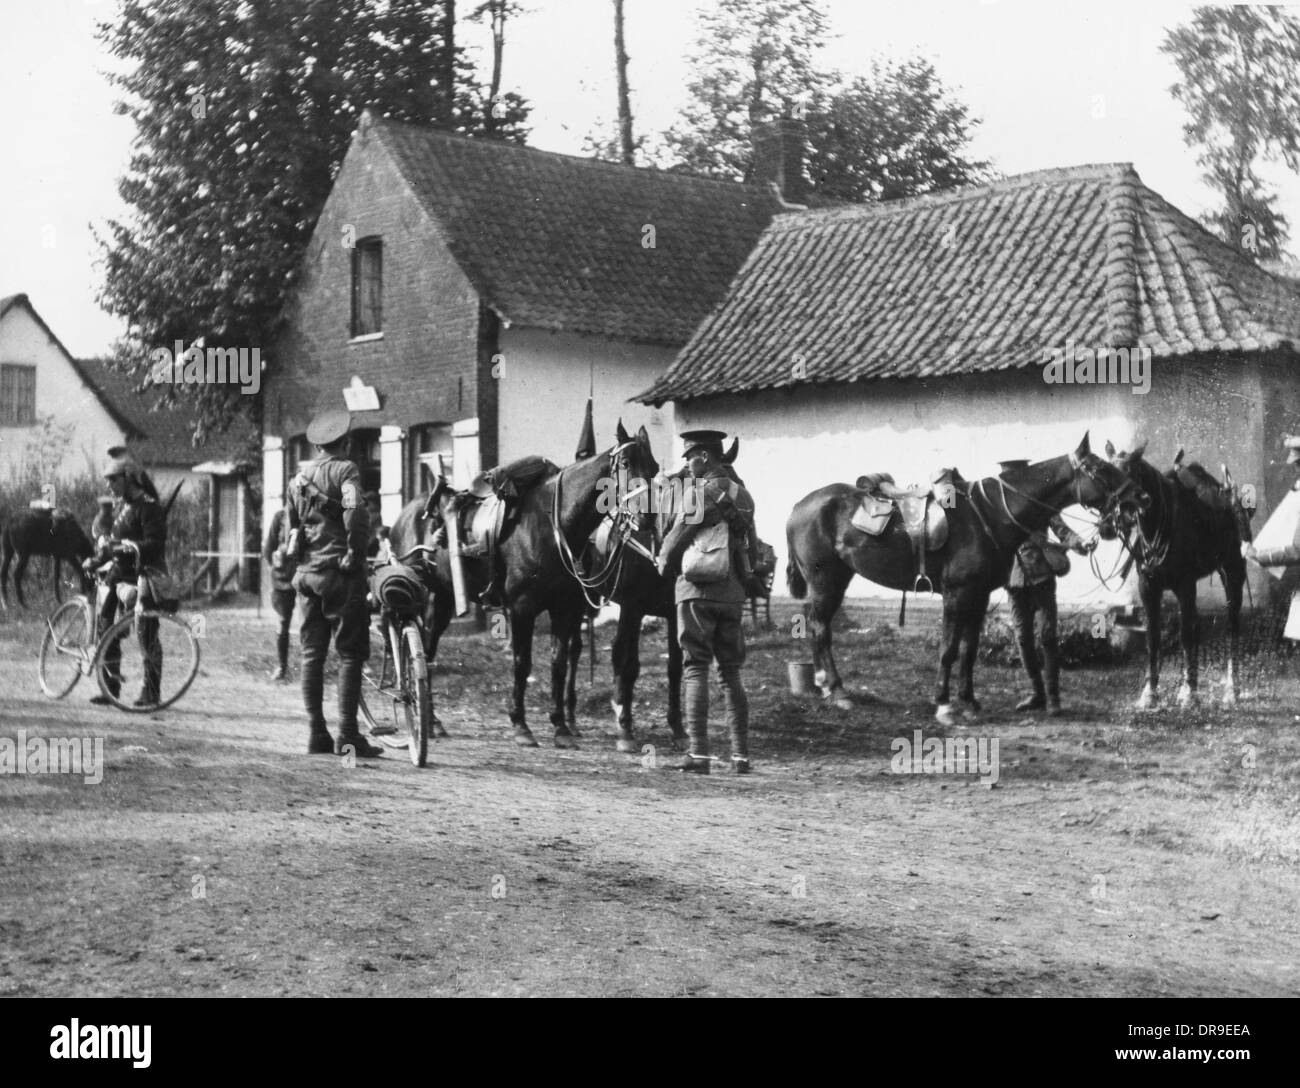 British troops in France 1914 - Stock Image